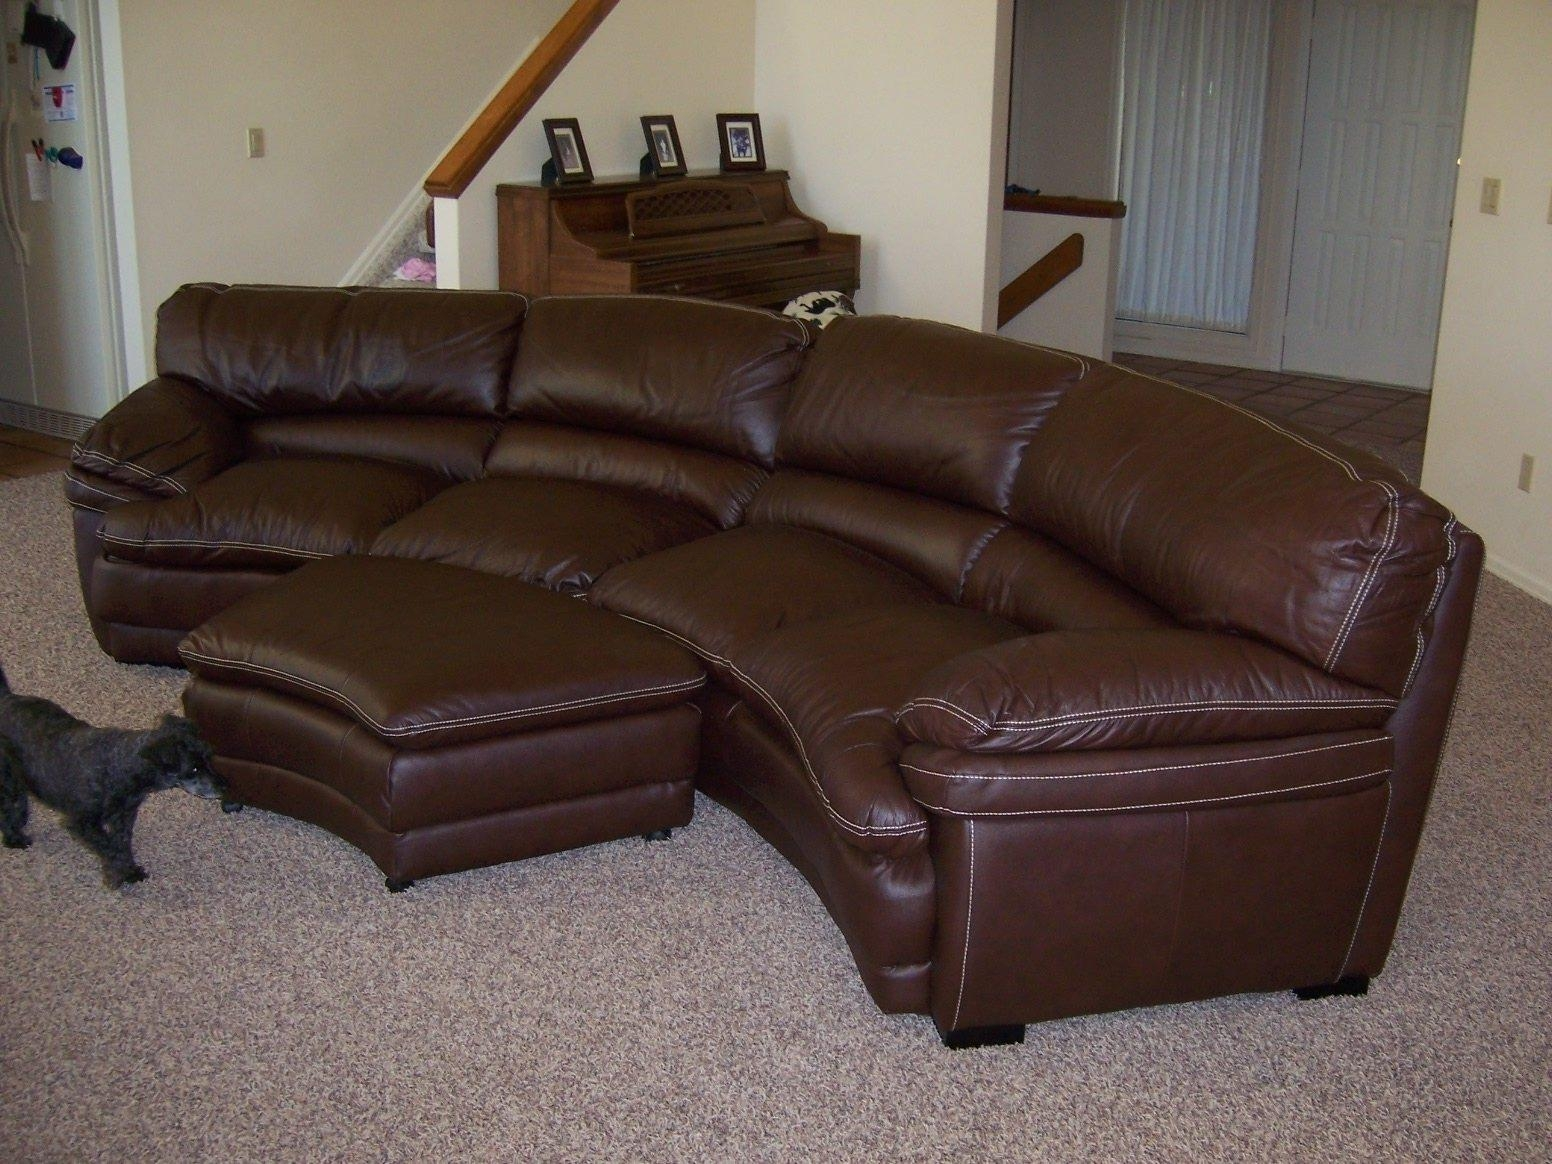 circular leather couch couch ideas. Black Bedroom Furniture Sets. Home Design Ideas